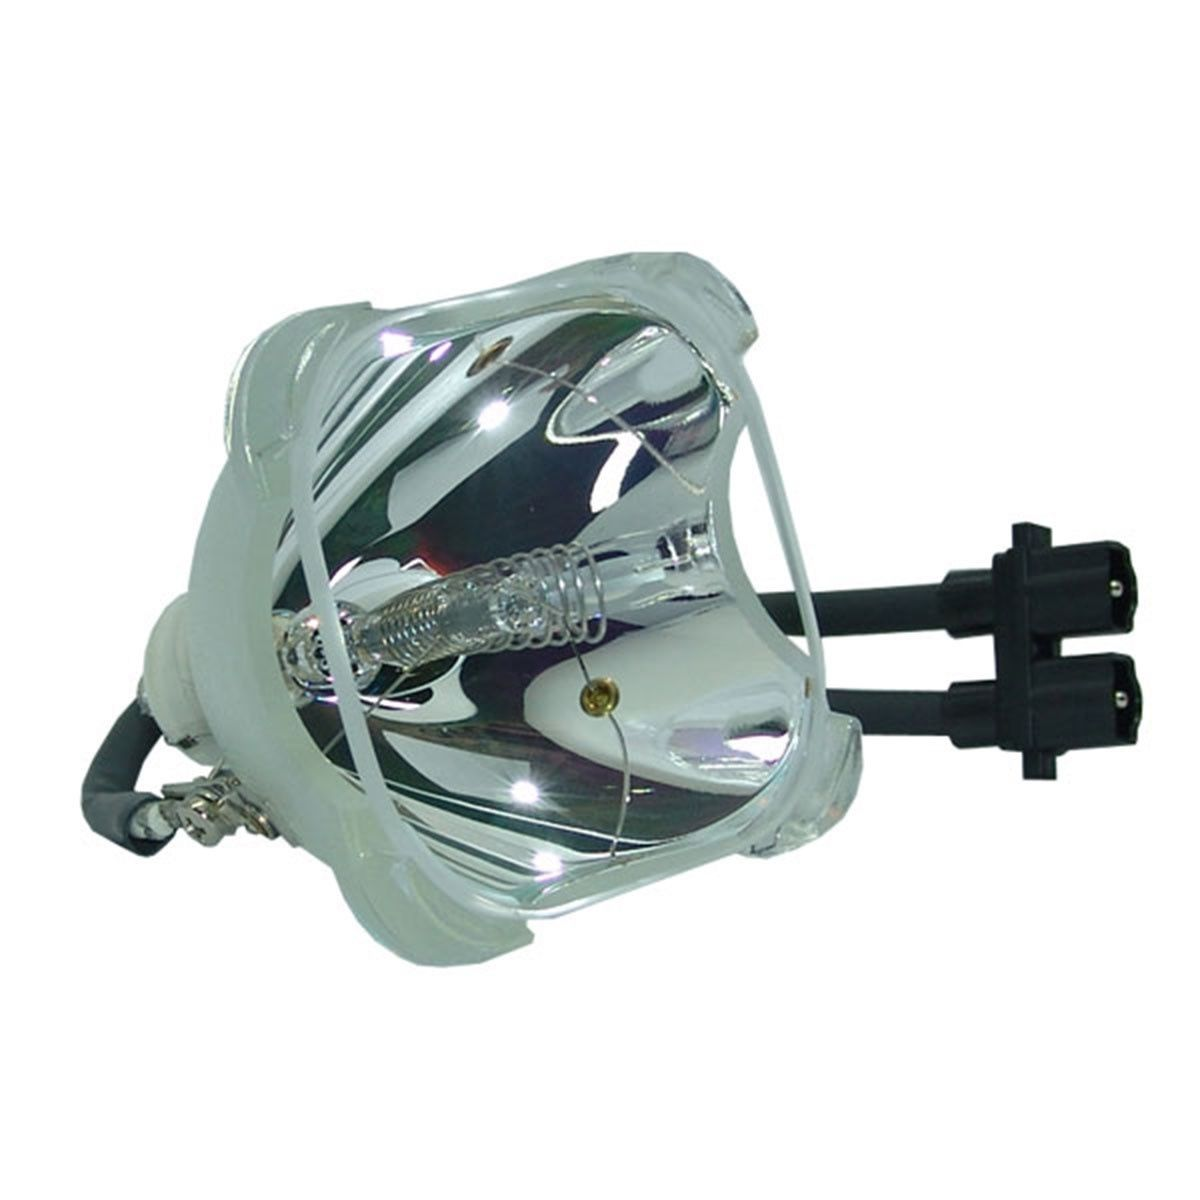 Compatible Bare Bulb 03-000648-01P for CHRISTIE LX20 Projector Lamp Bulb without housing